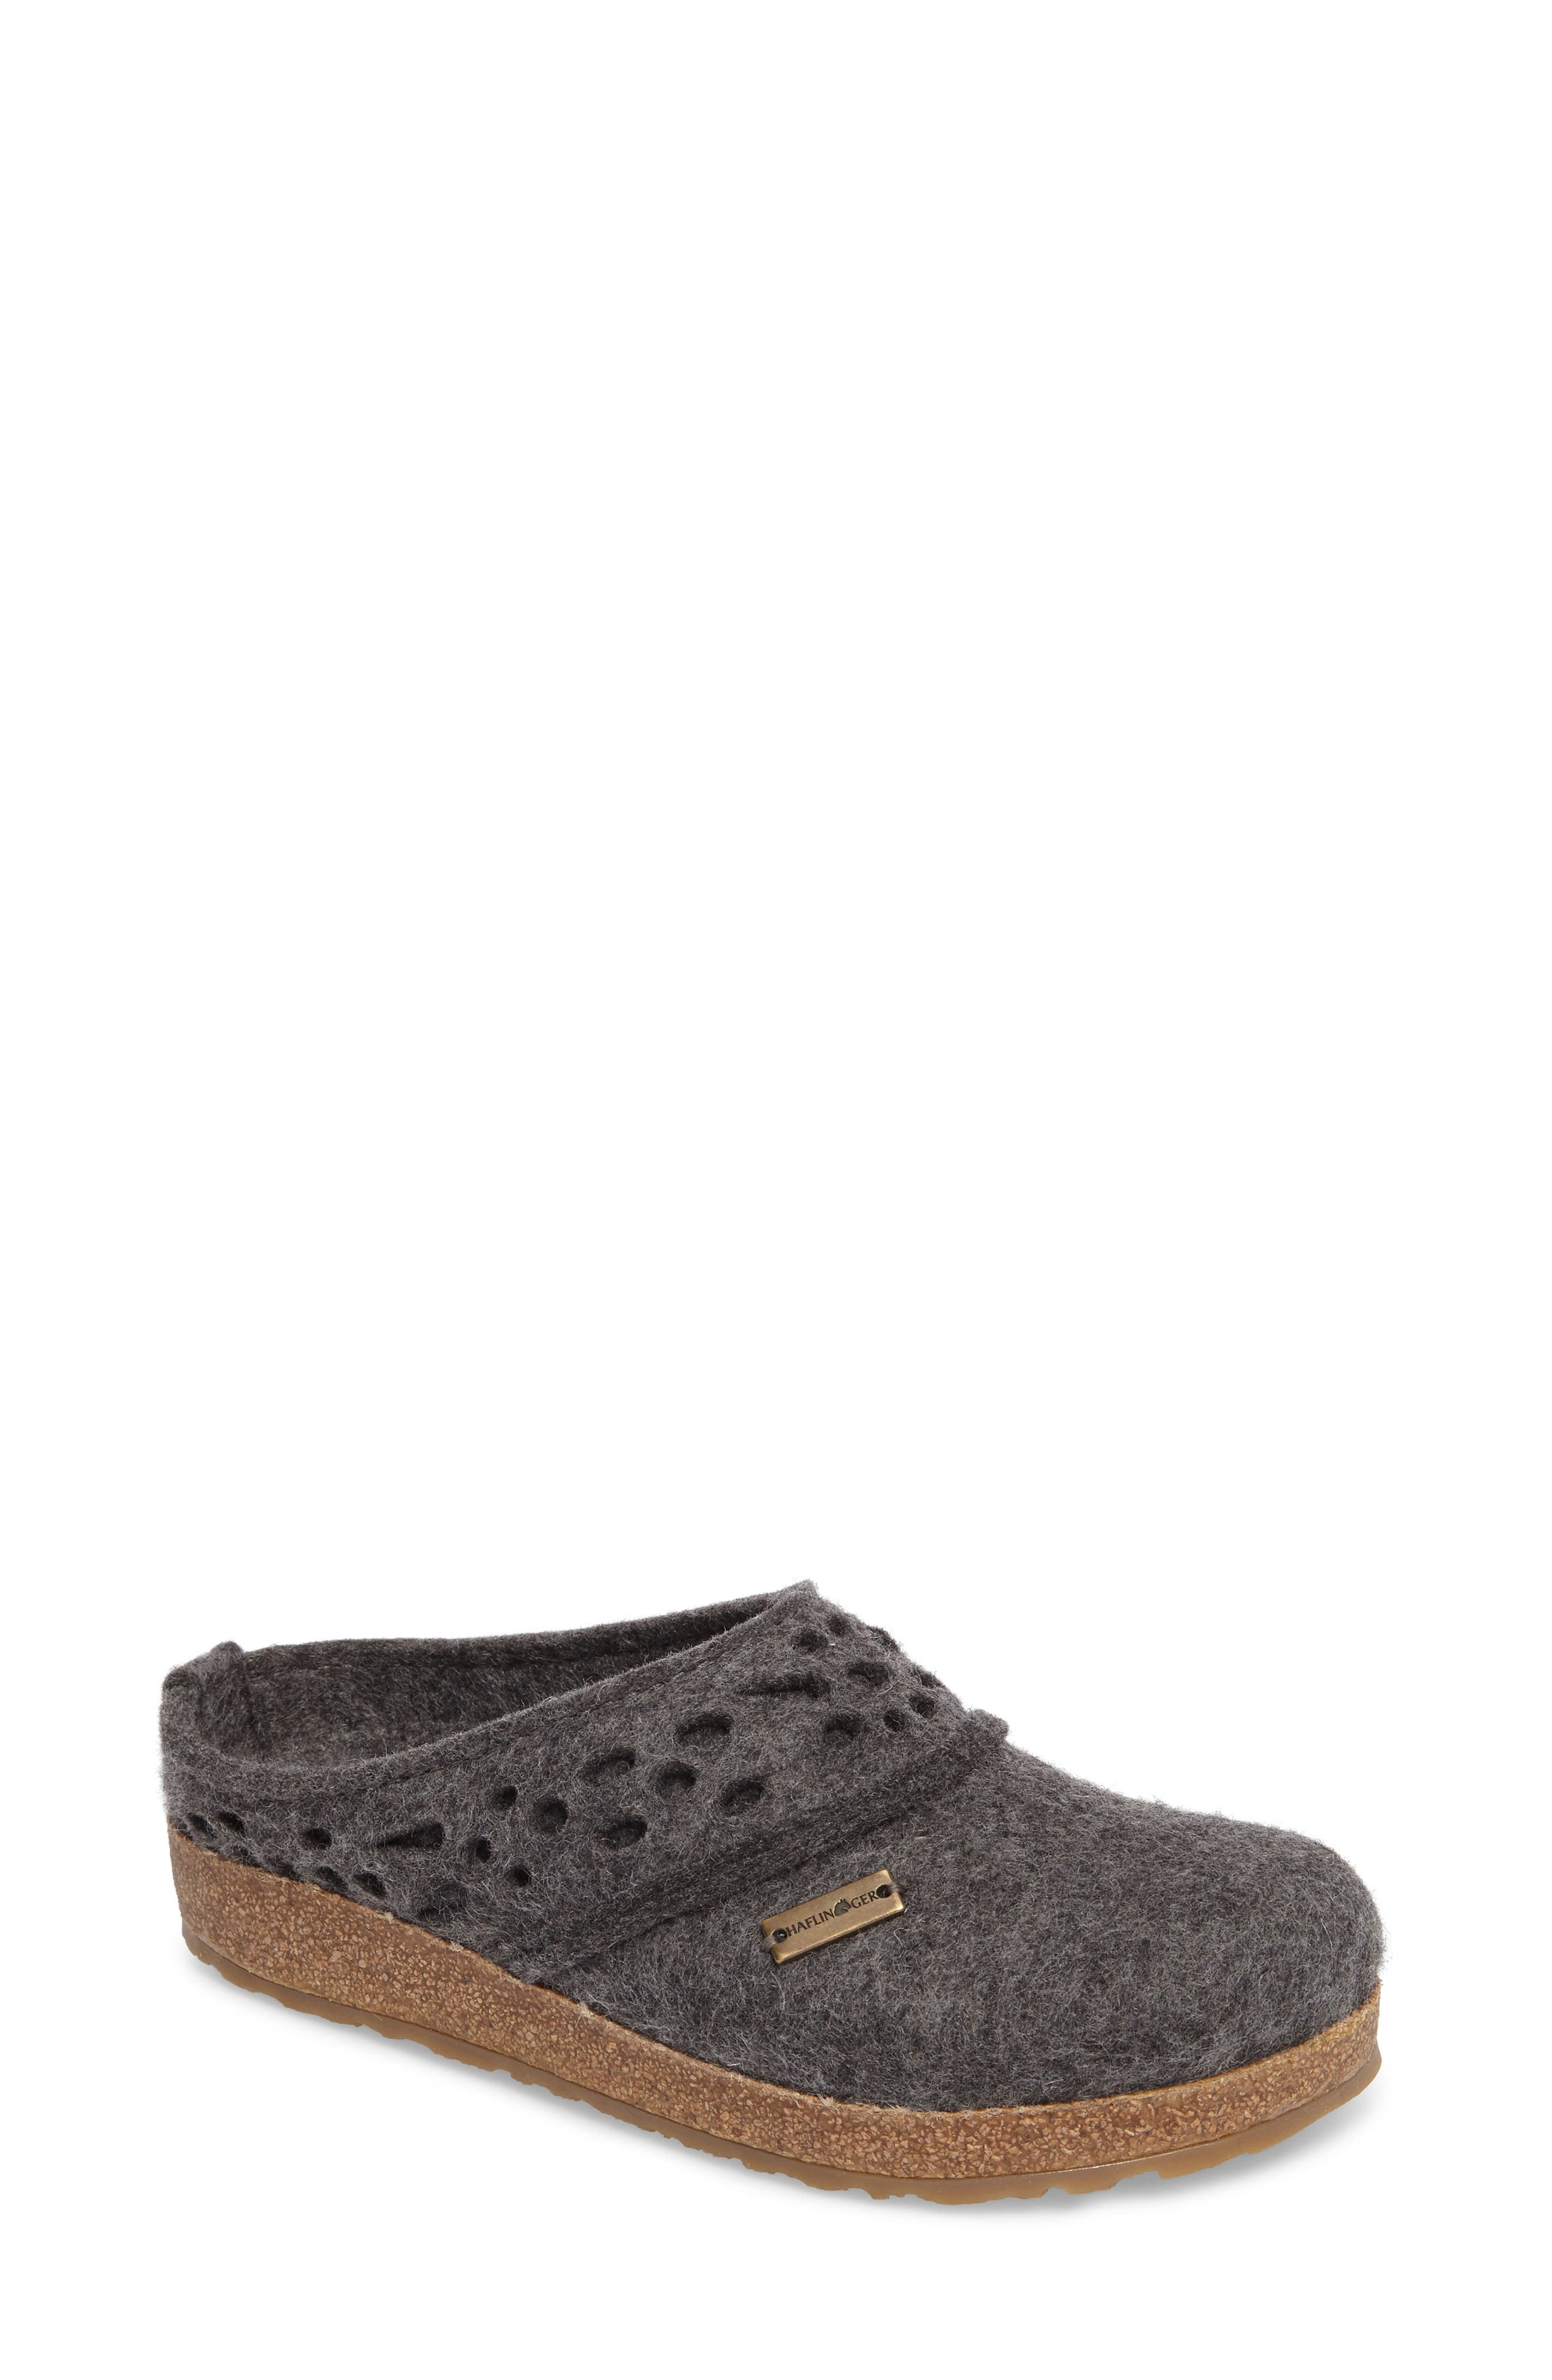 'Lacey' Slipper,                         Main,                         color, 020